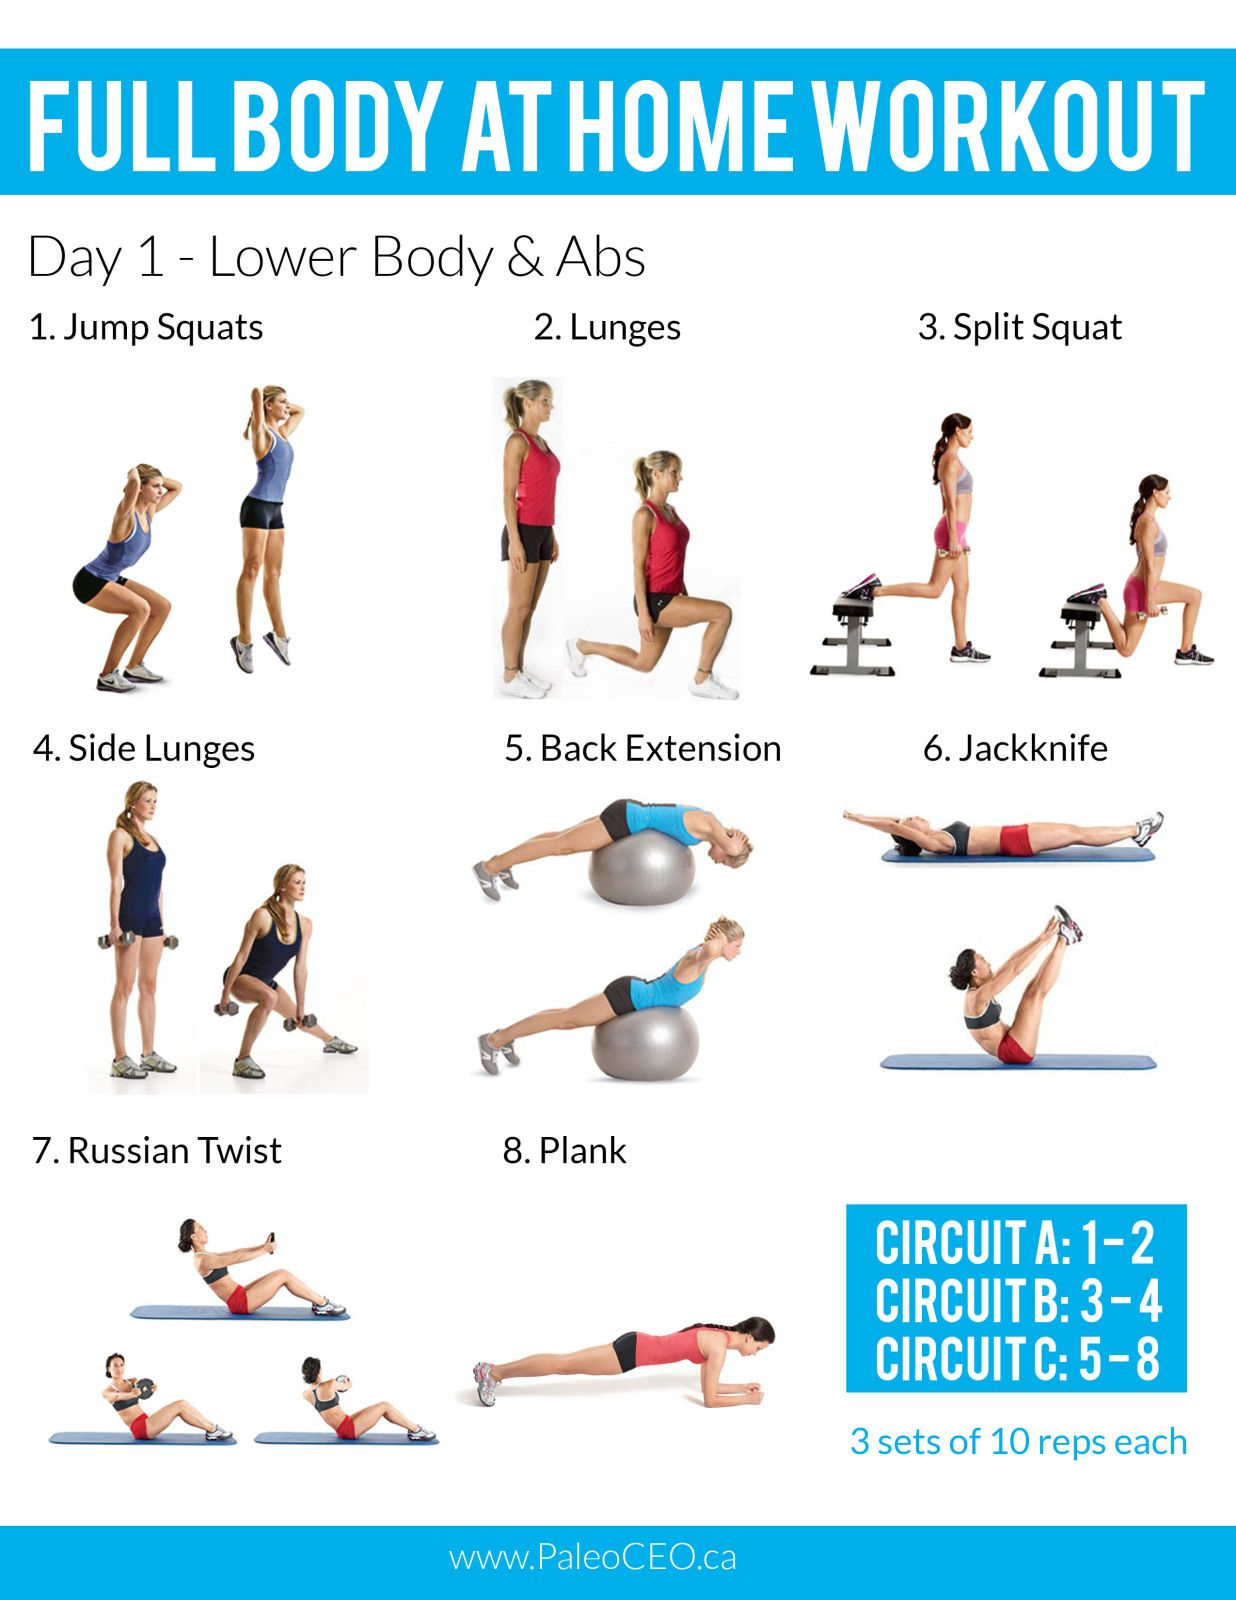 Home Weight Workouts 28 Images Pre Wedding Workout Plan Ivory Bridal Formal Events